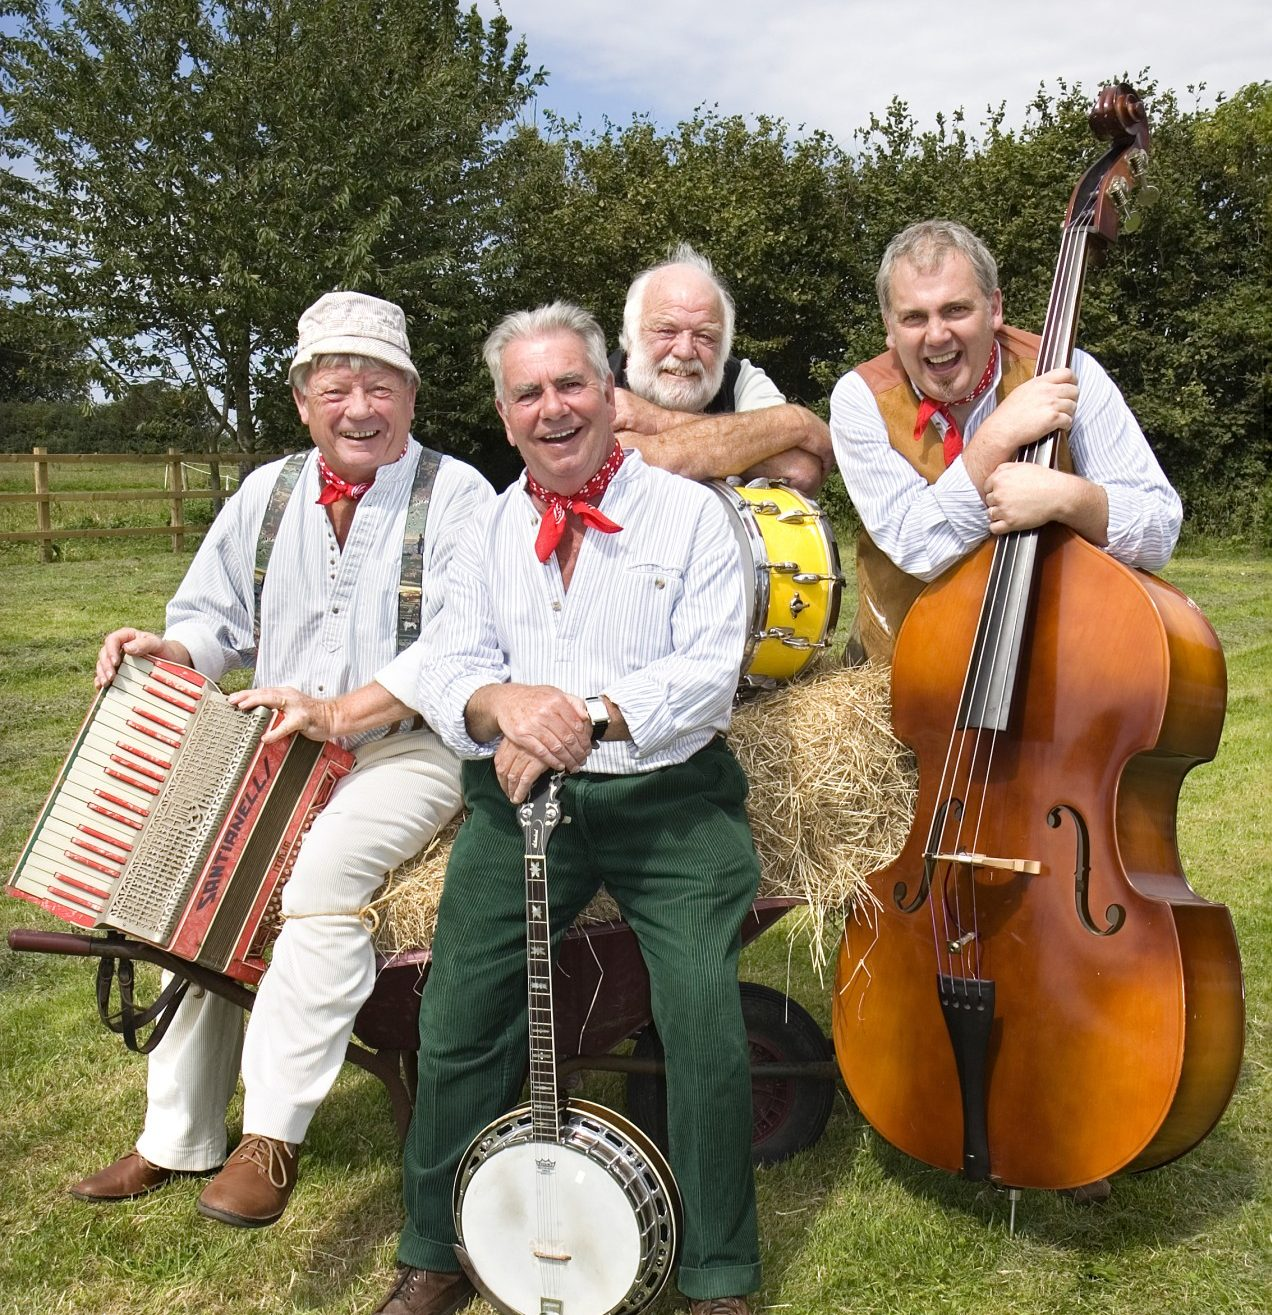 The Wurzels band sitting in a field with their instruments